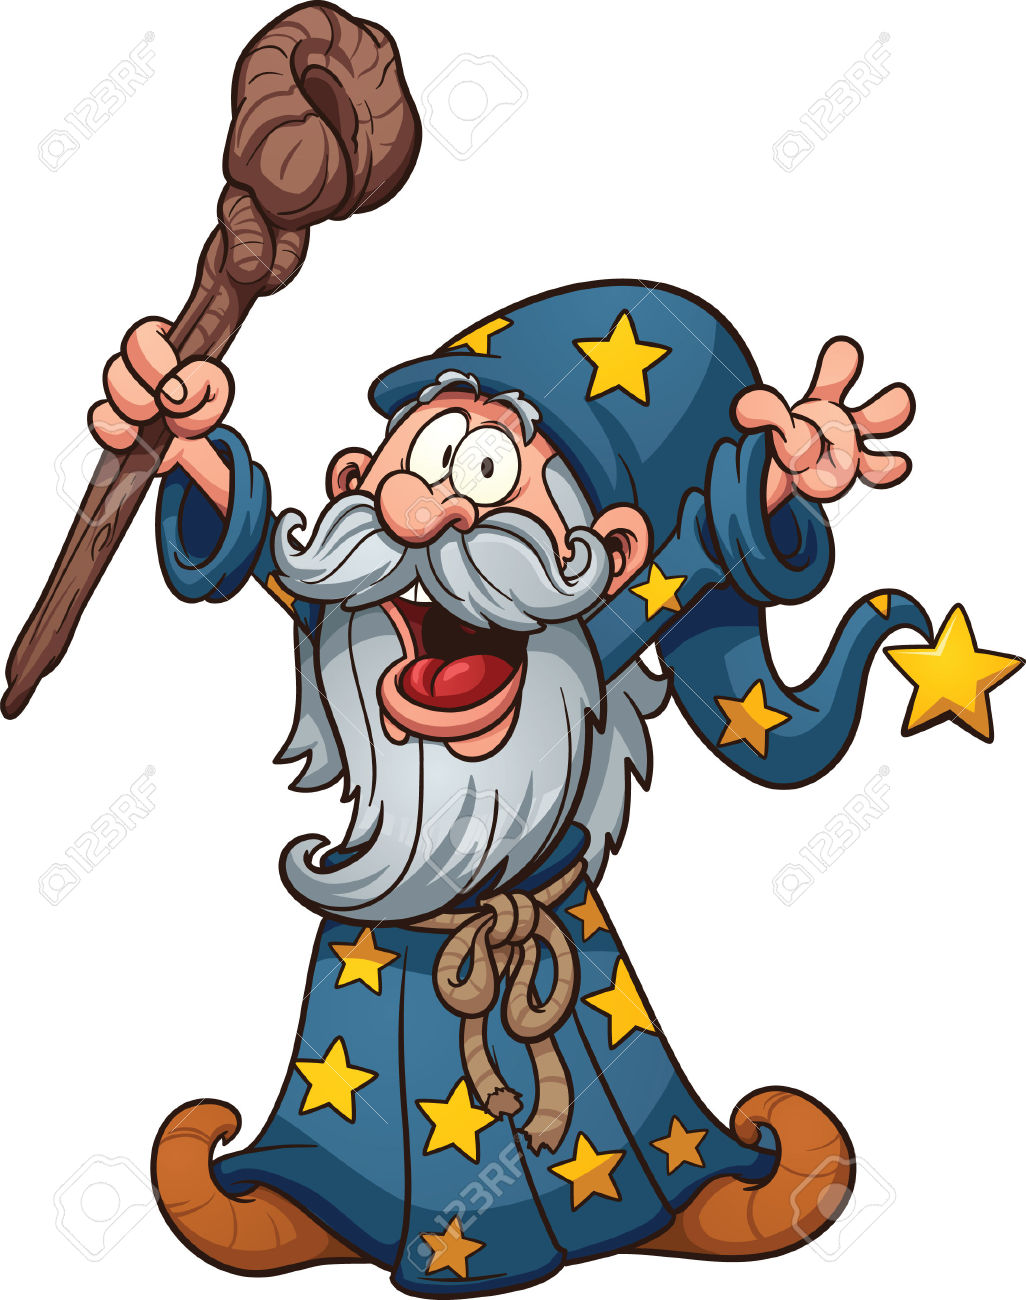 Wiz of is clipart clip freeuse stock Friendly Wizard Clipart & Free Clip Art Images #9253 - Clipartimage.com clip freeuse stock